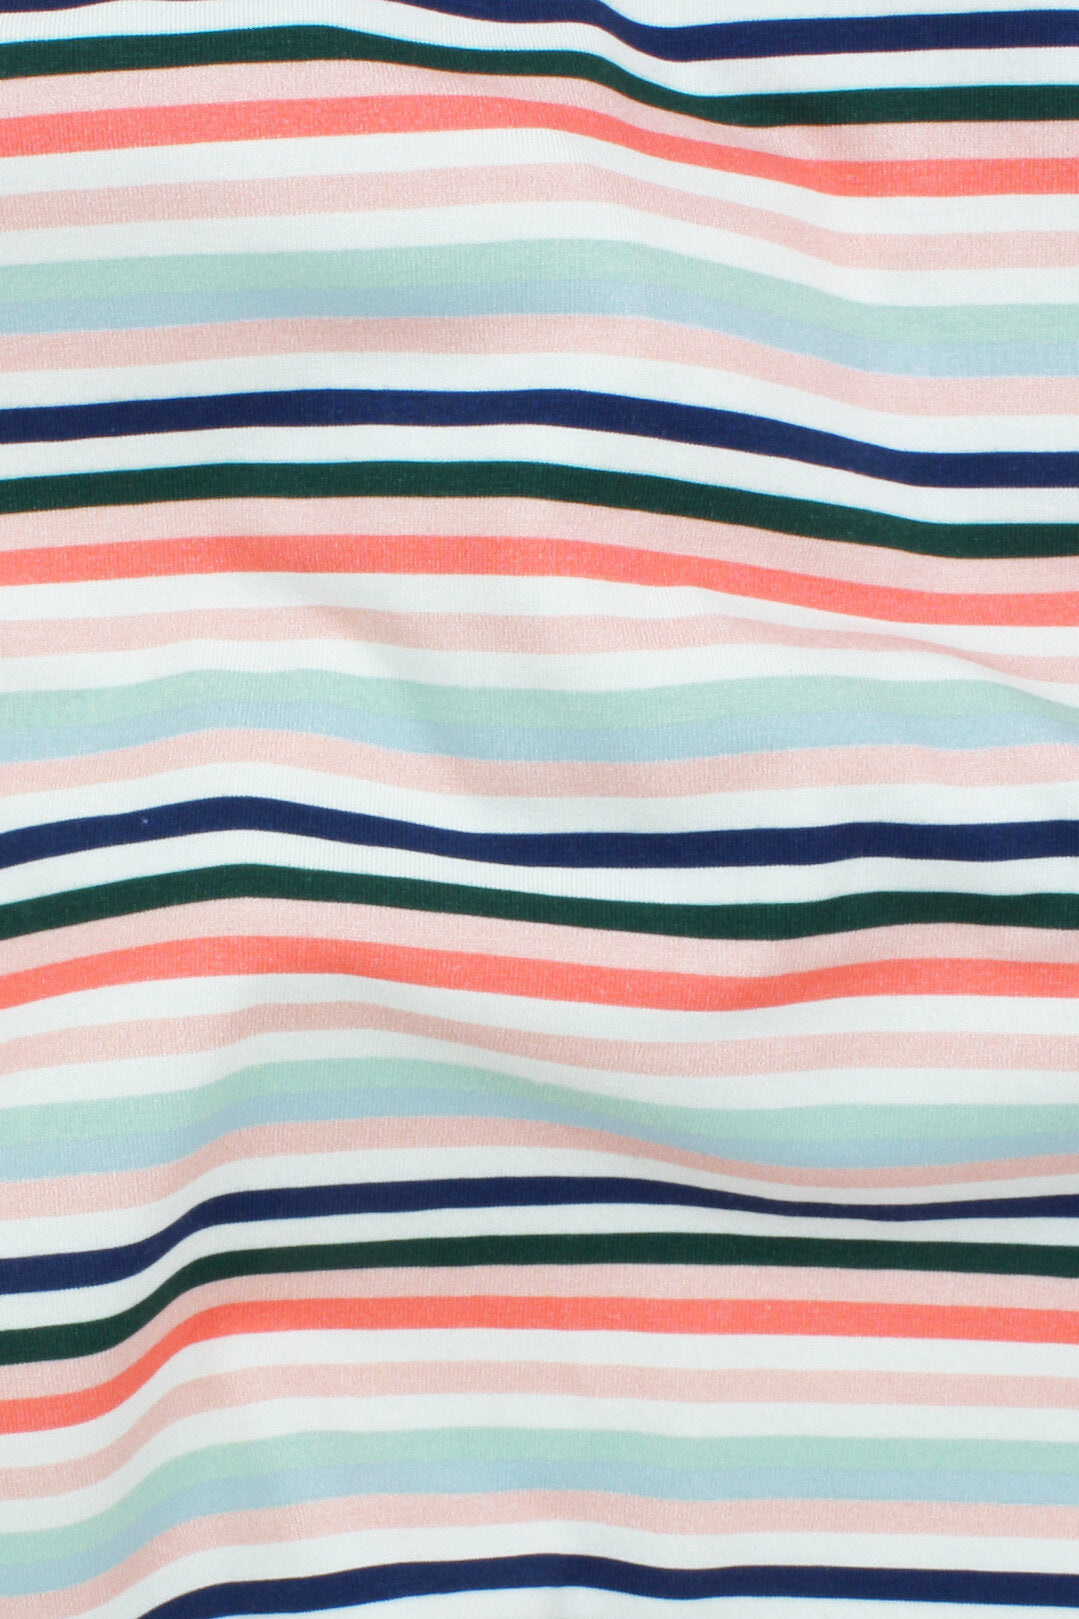 Perla Digital Stripe Coral / Pink